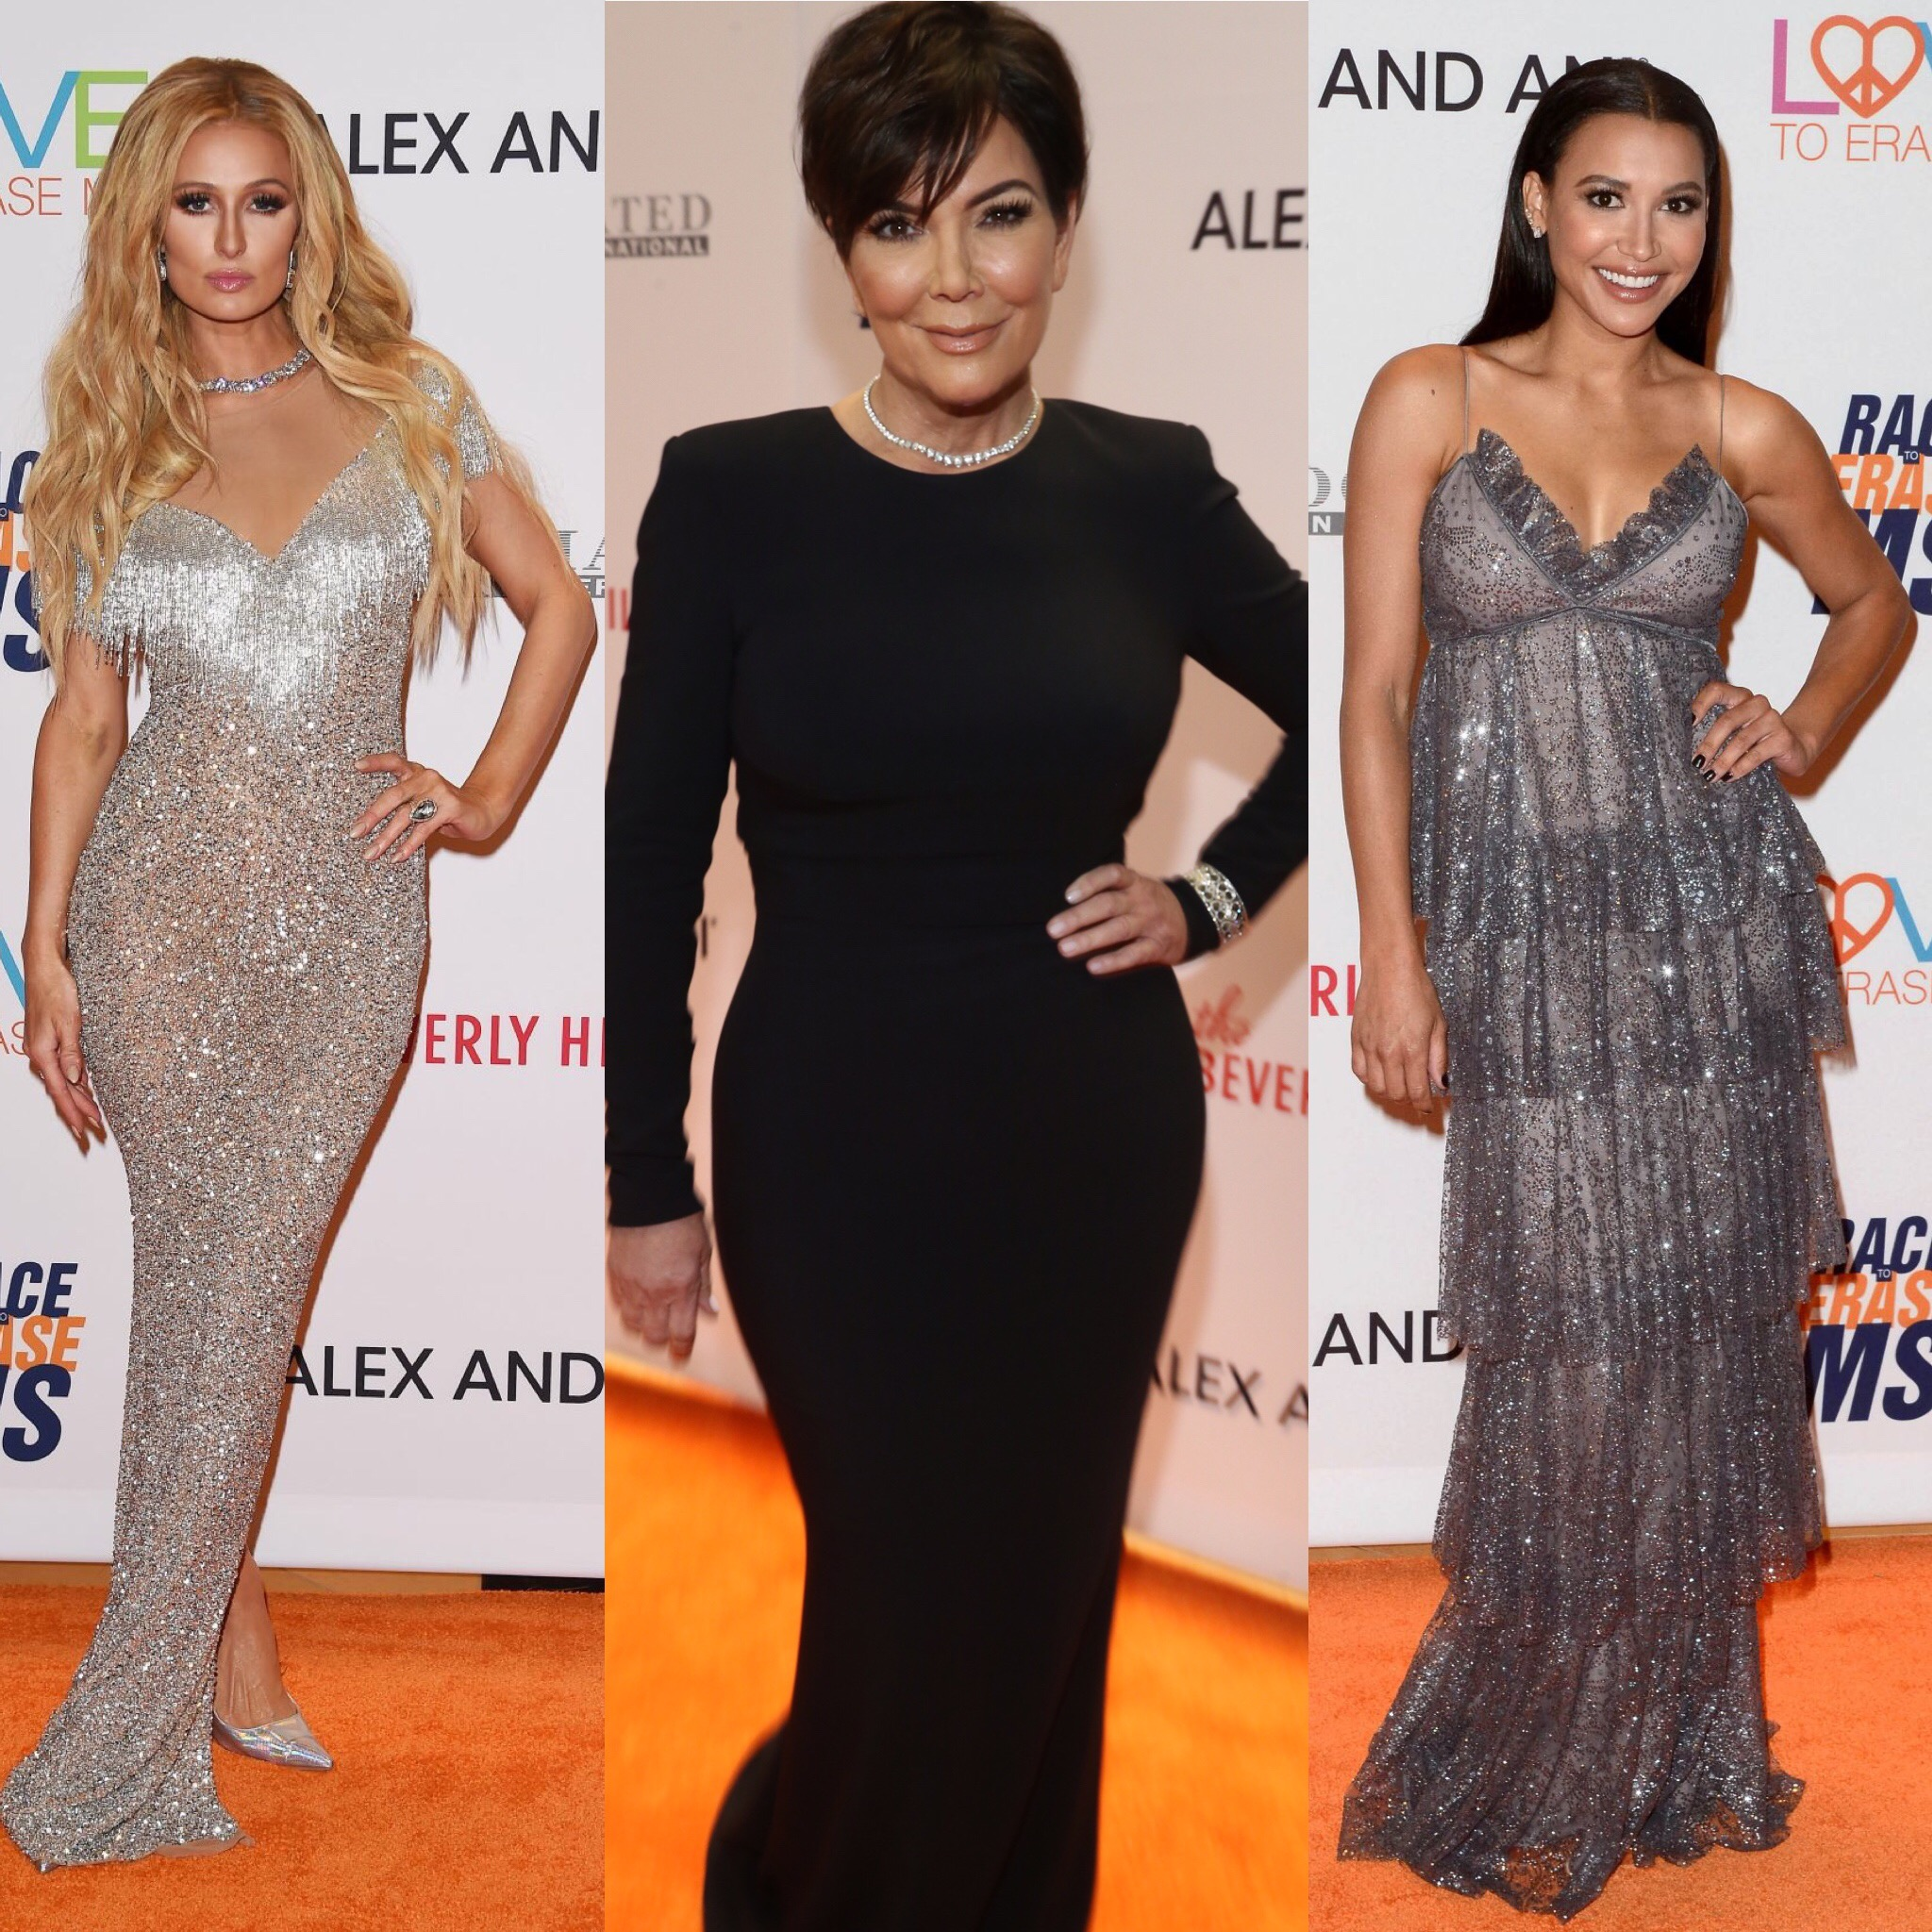 The Race To Erase MS Celebrates Its 24th Annual Gala